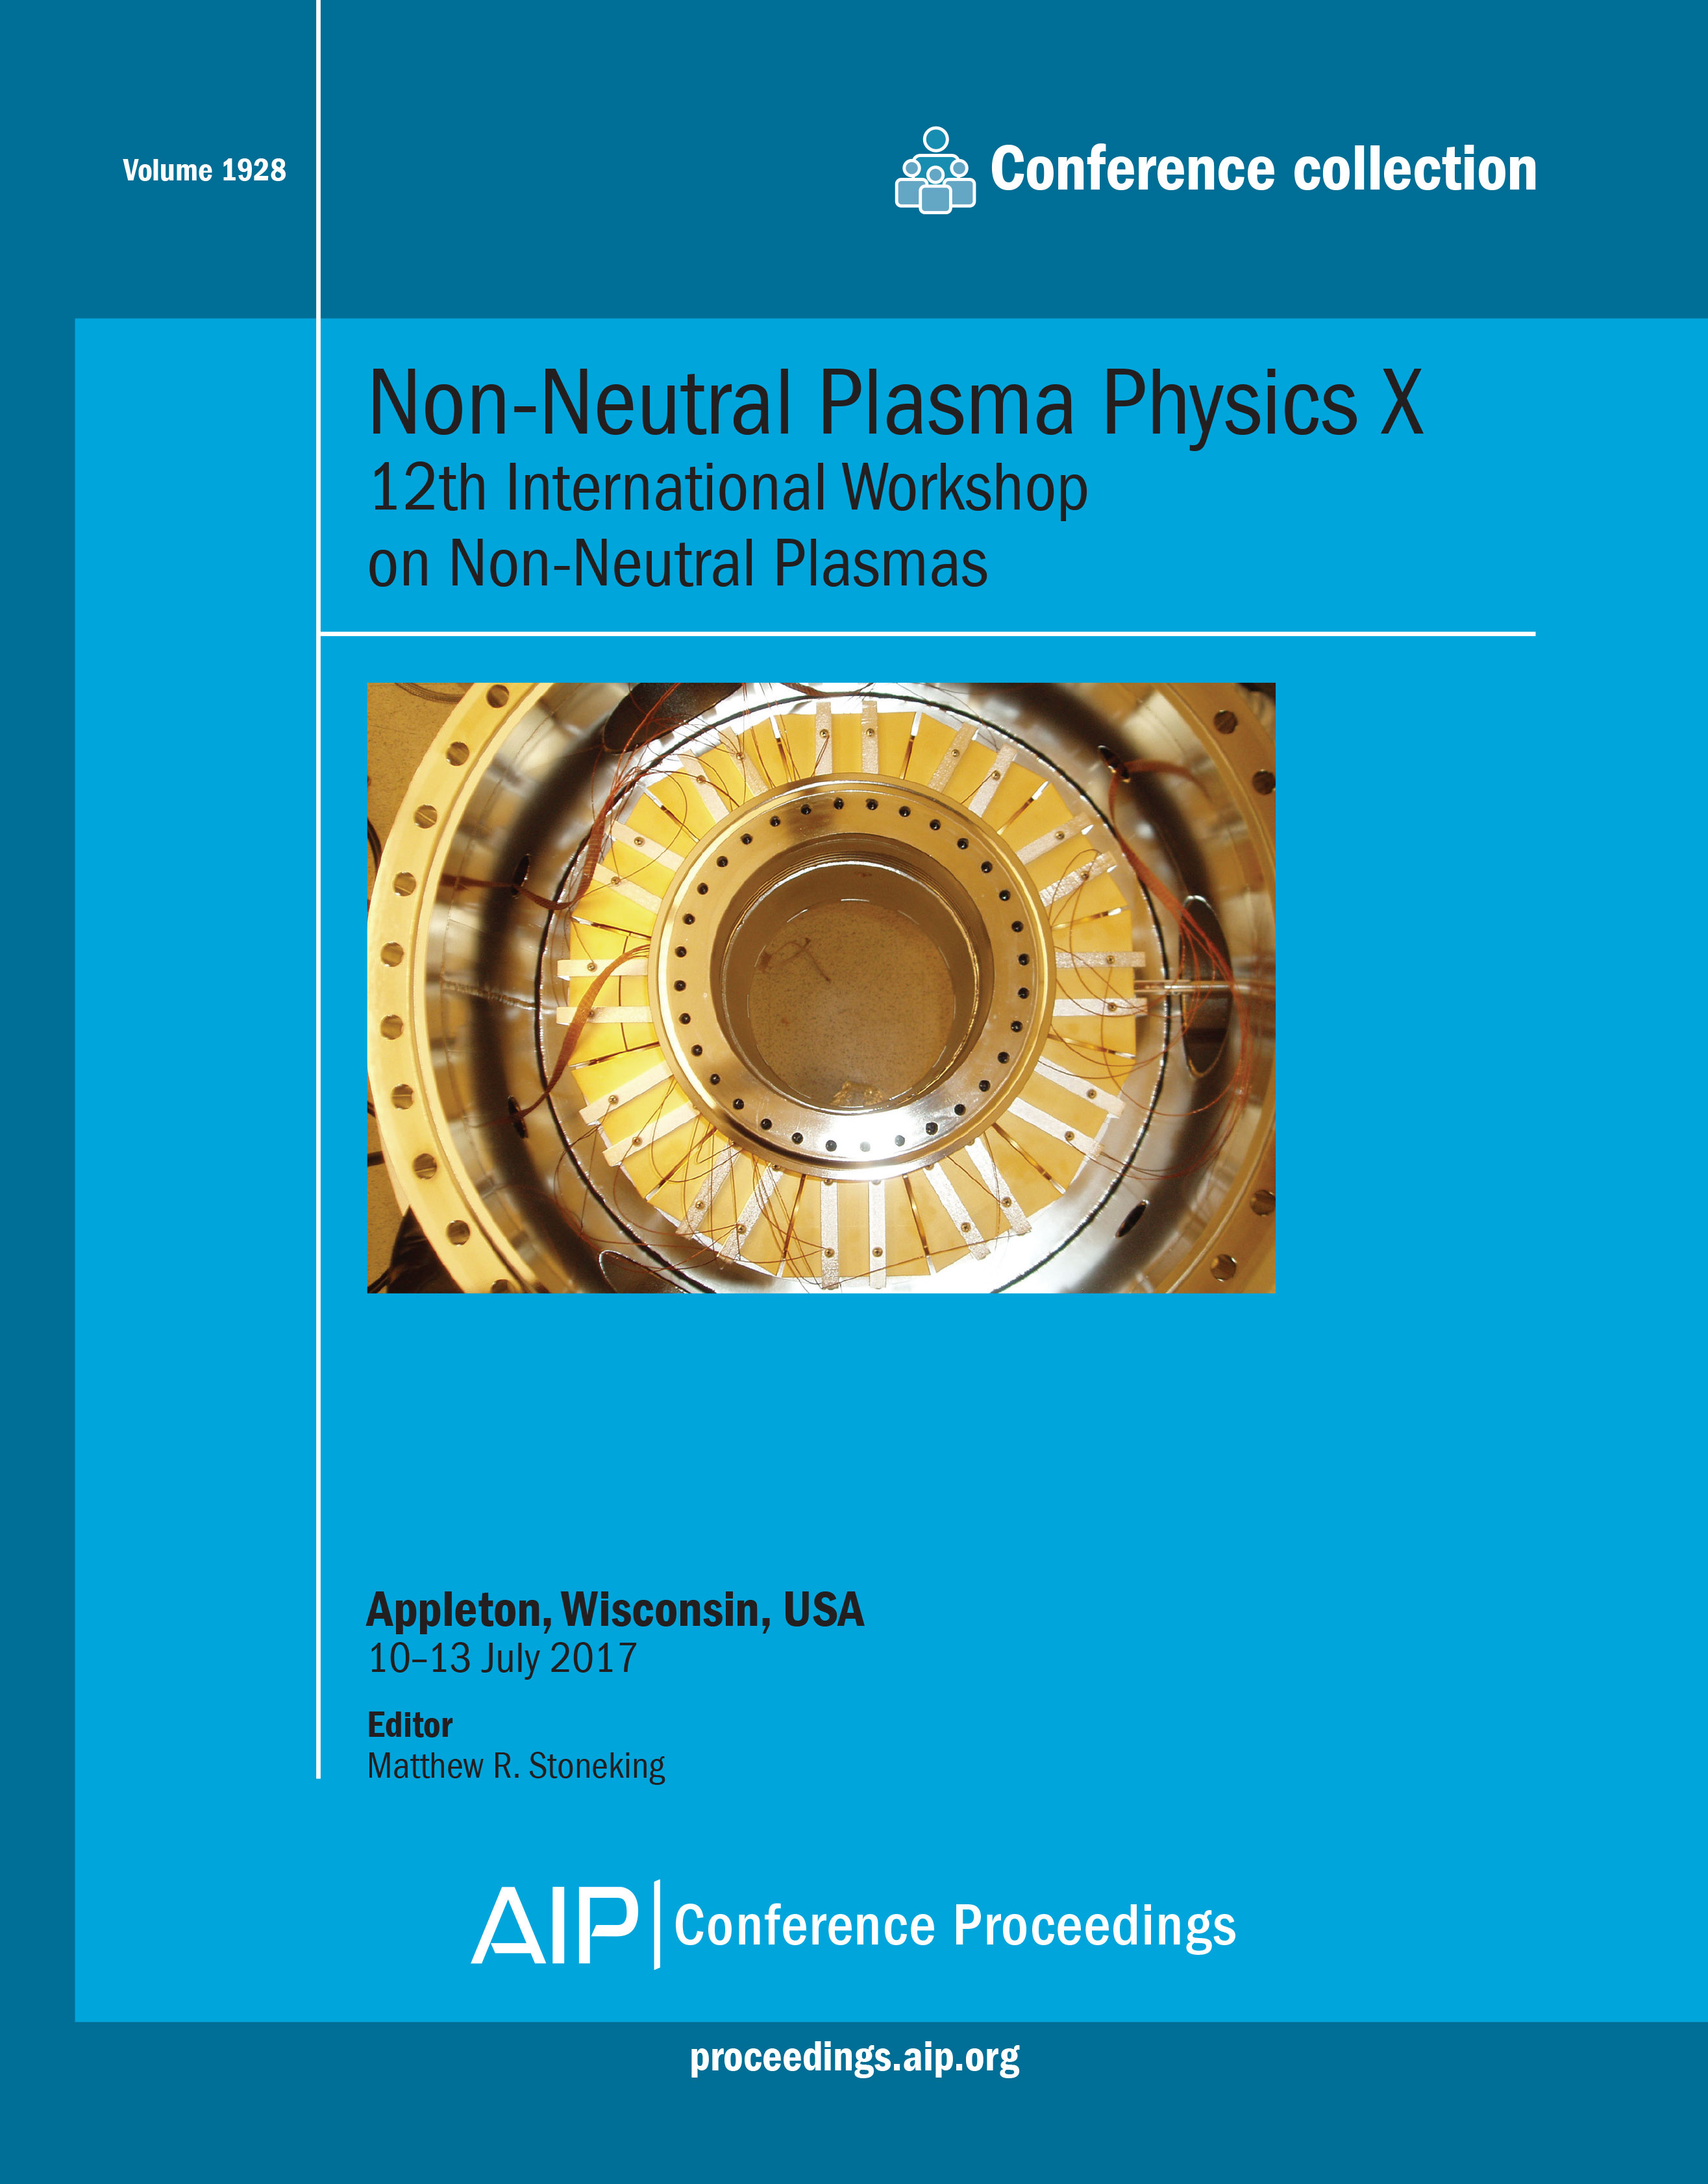 Conference Photo: Non-Neutral Plasma Physics X: AIP